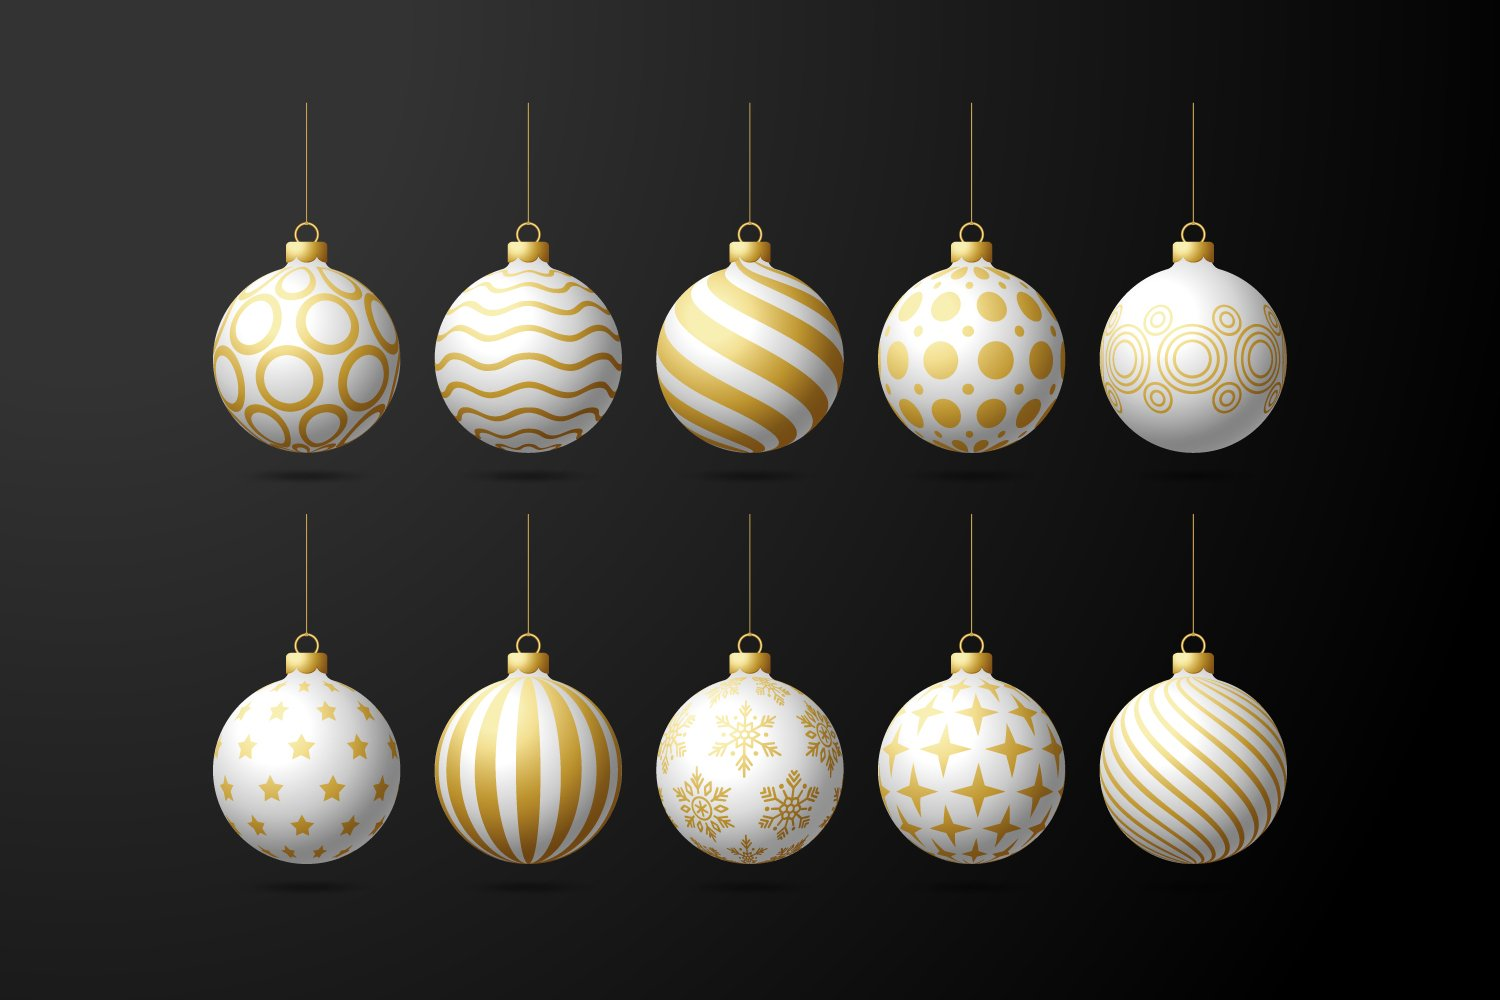 Black background and white Christmas decorations with golden lines and geometric shapes.